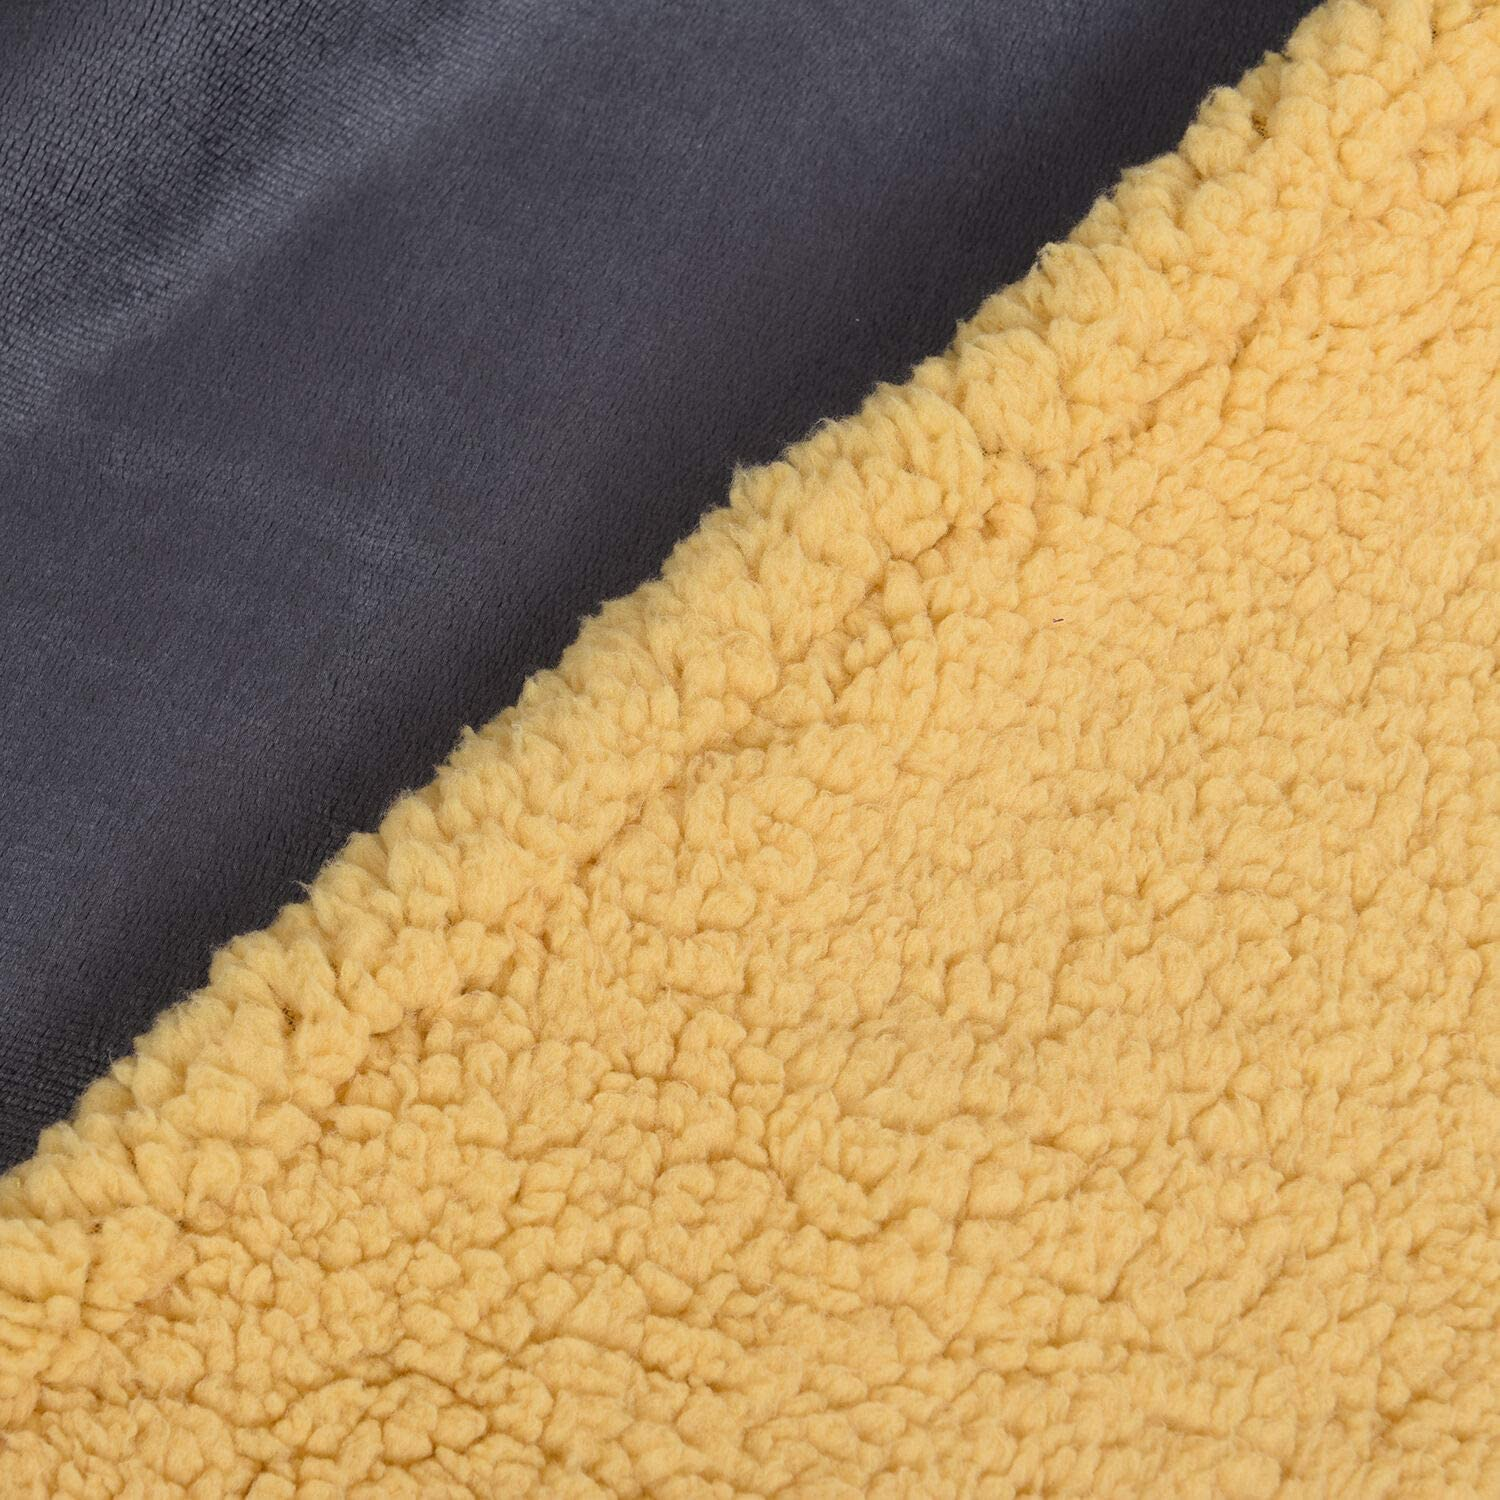 TJC Serenity Night Double Layr Dark Grey and Yellow Sherpa Blanket Size 200x150cm